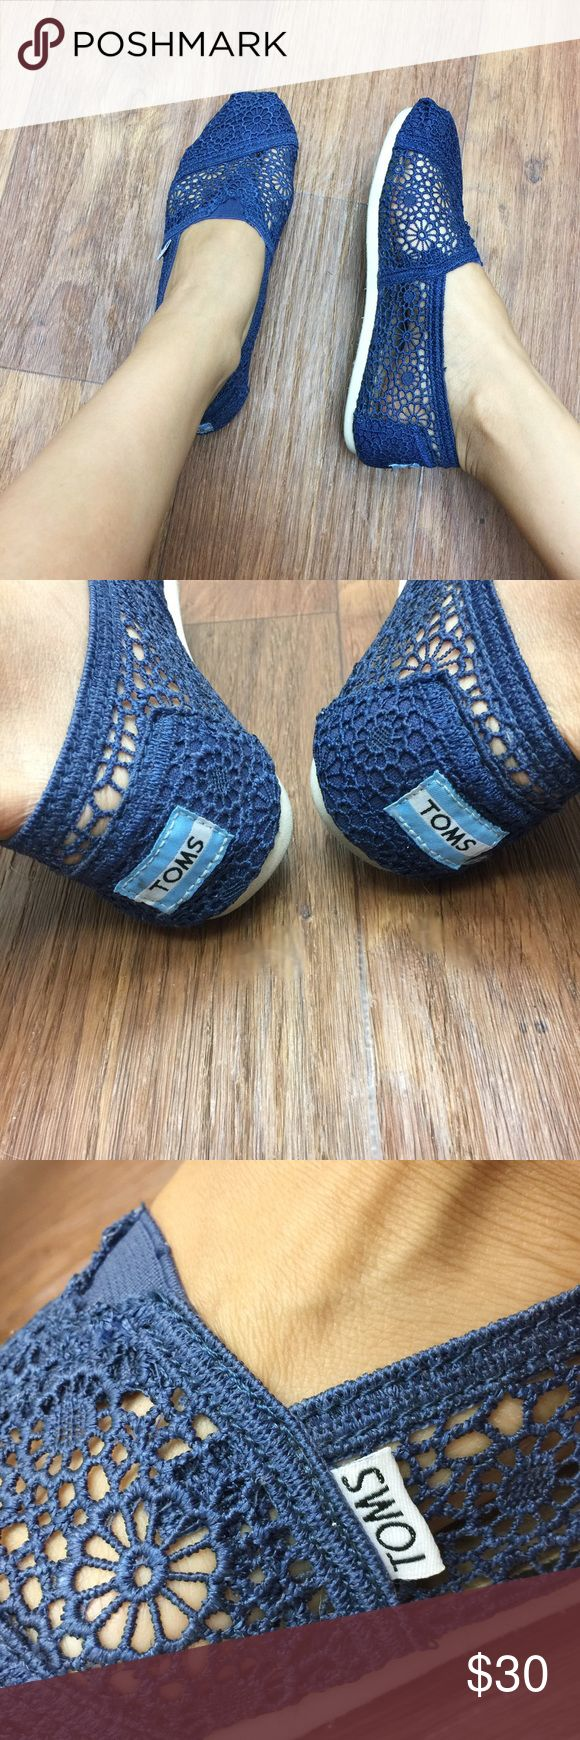 TOMS Navy Blue Lace TOMS! Only worn once, in excellent condition, very clean and like new! TOMS Shoes